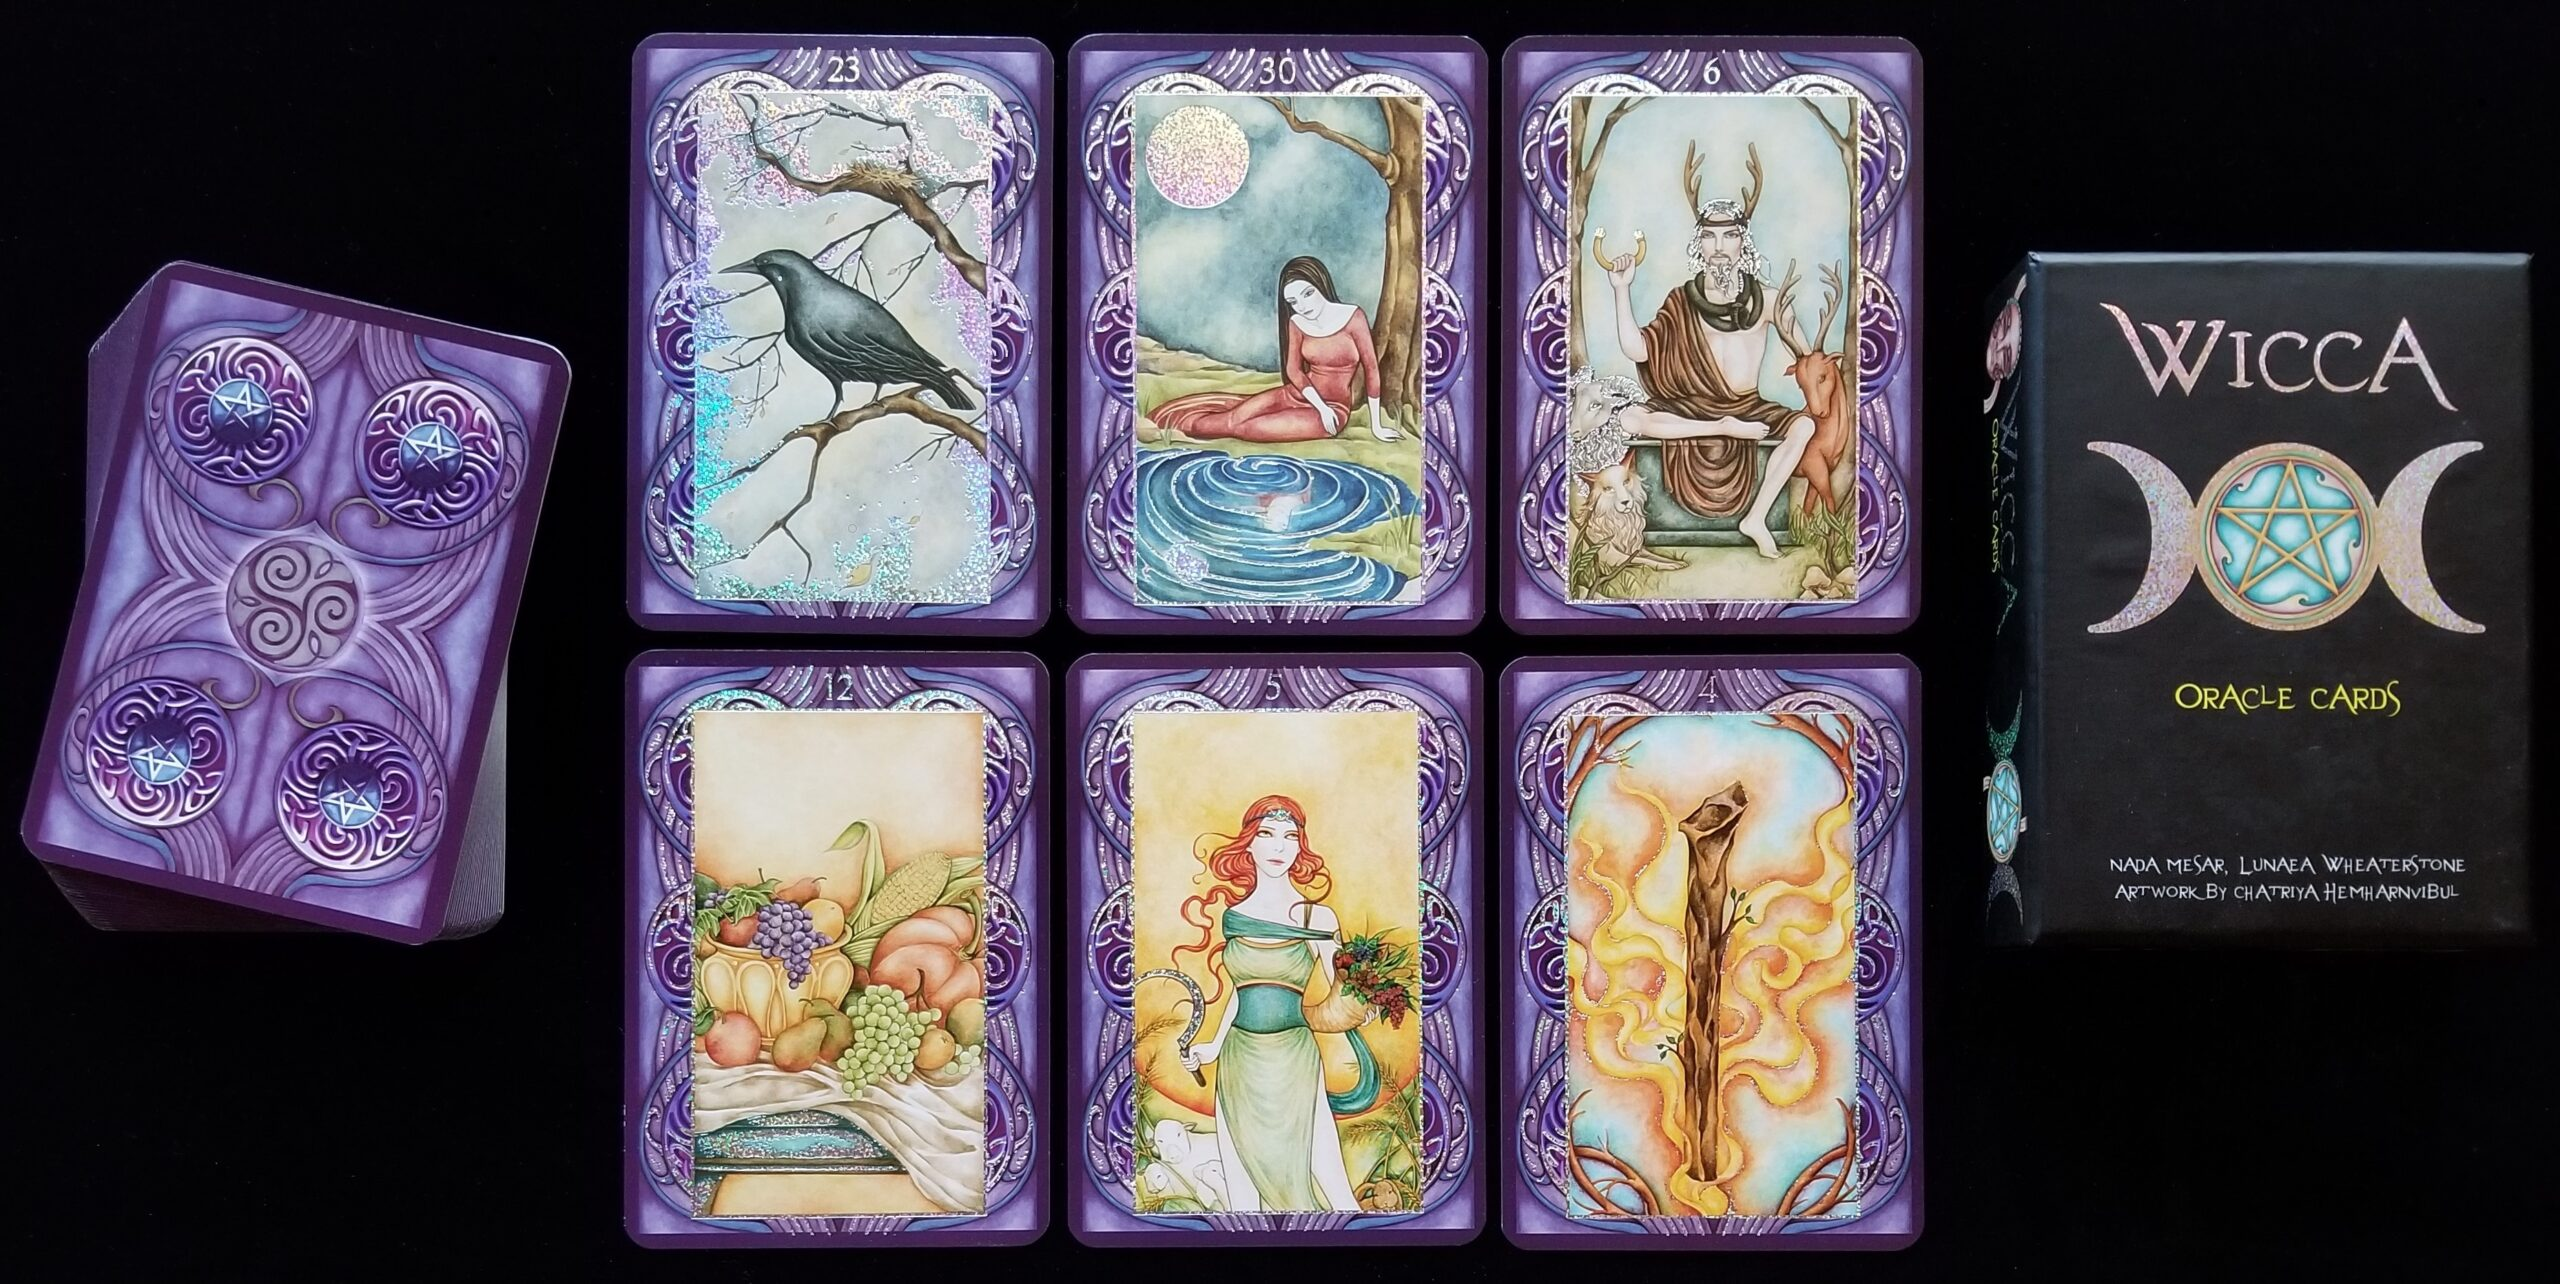 Using Oracle Cards